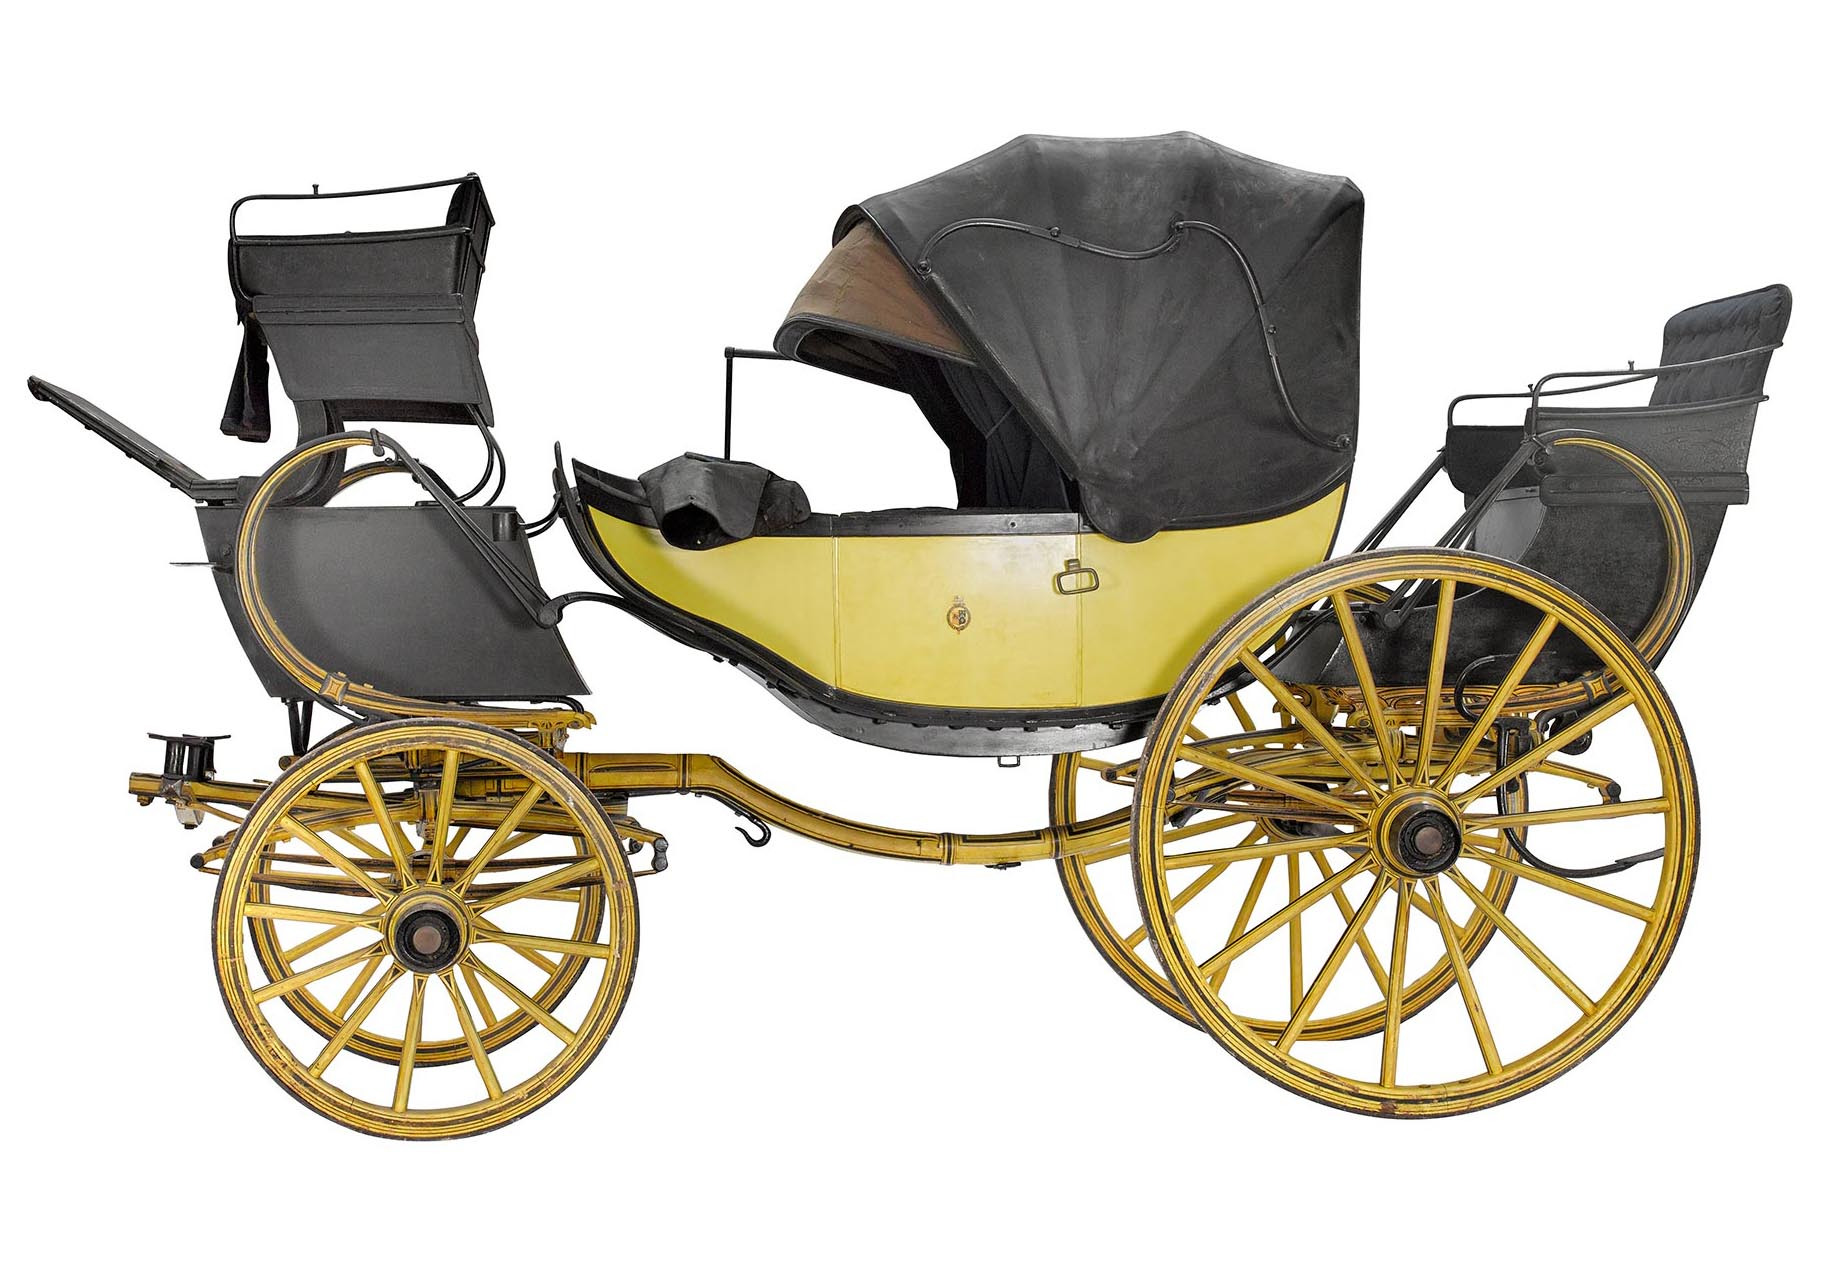 The Staffordshire Carriages website features 3D imaging that you can rotate and zoom in to explore detail, including this luxury Barouche.